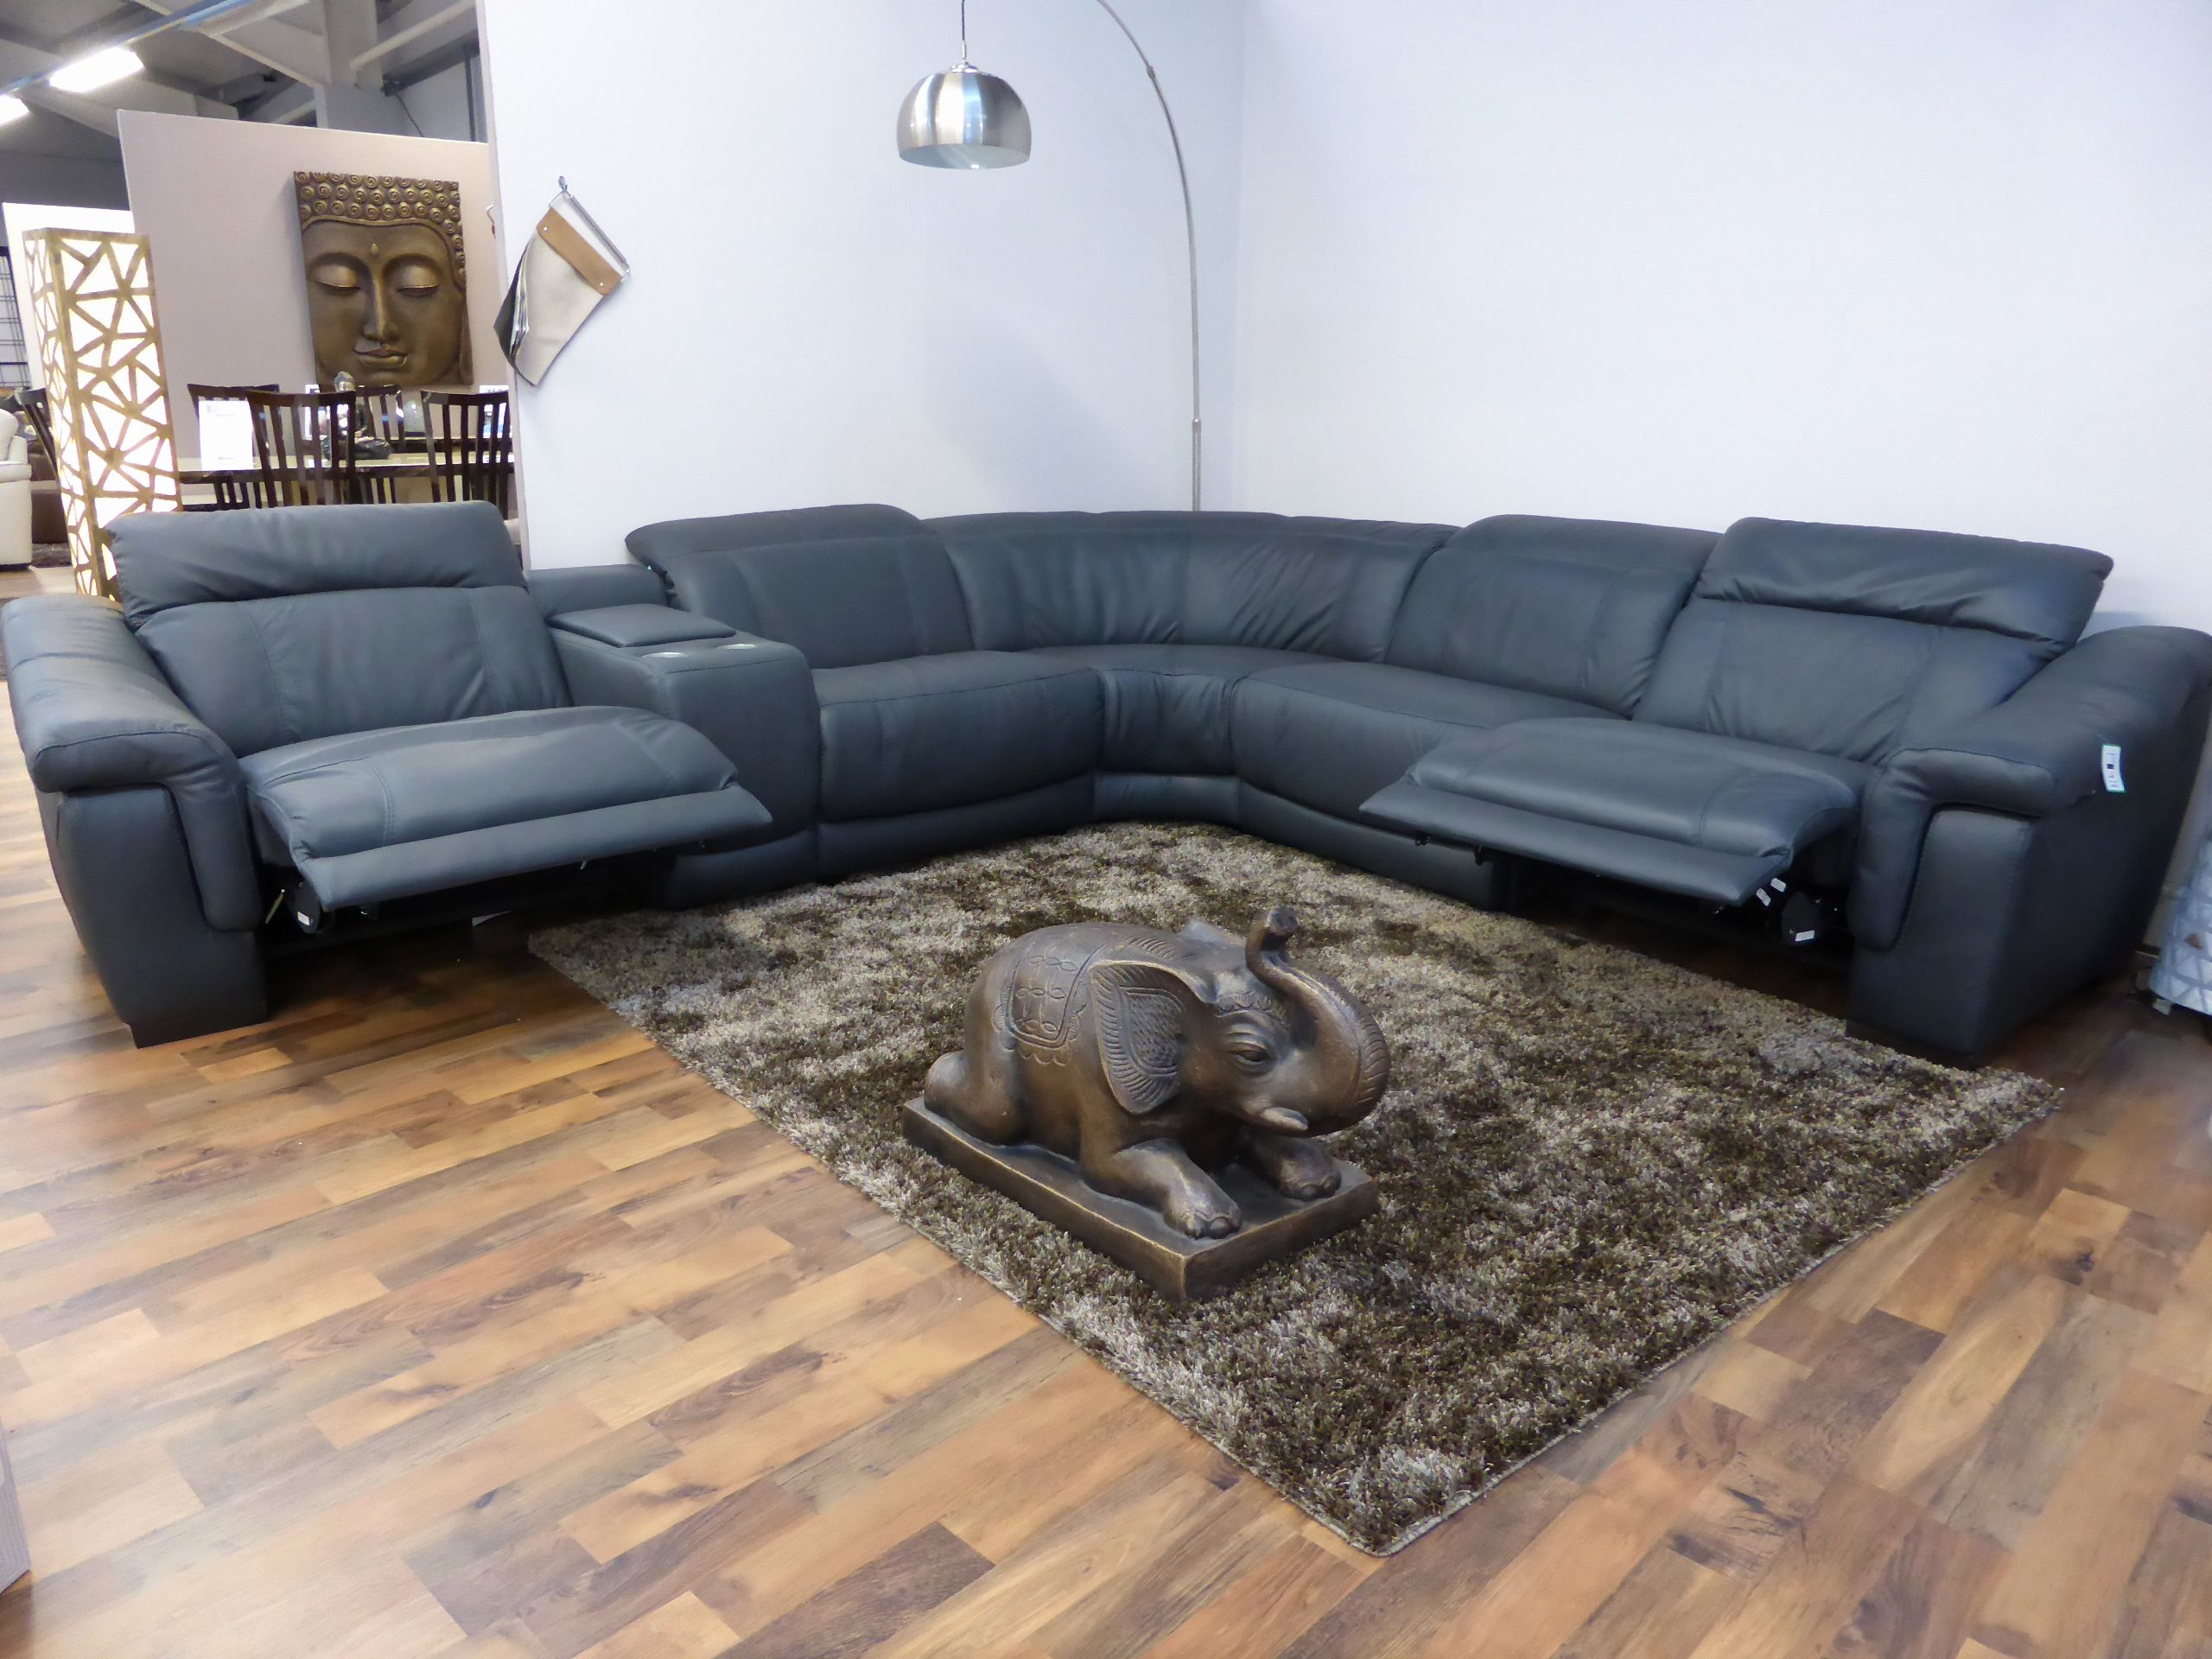 Swell Pin By Great Sofas On Corner Sofa Leather Corner Sofa Download Free Architecture Designs Sospemadebymaigaardcom